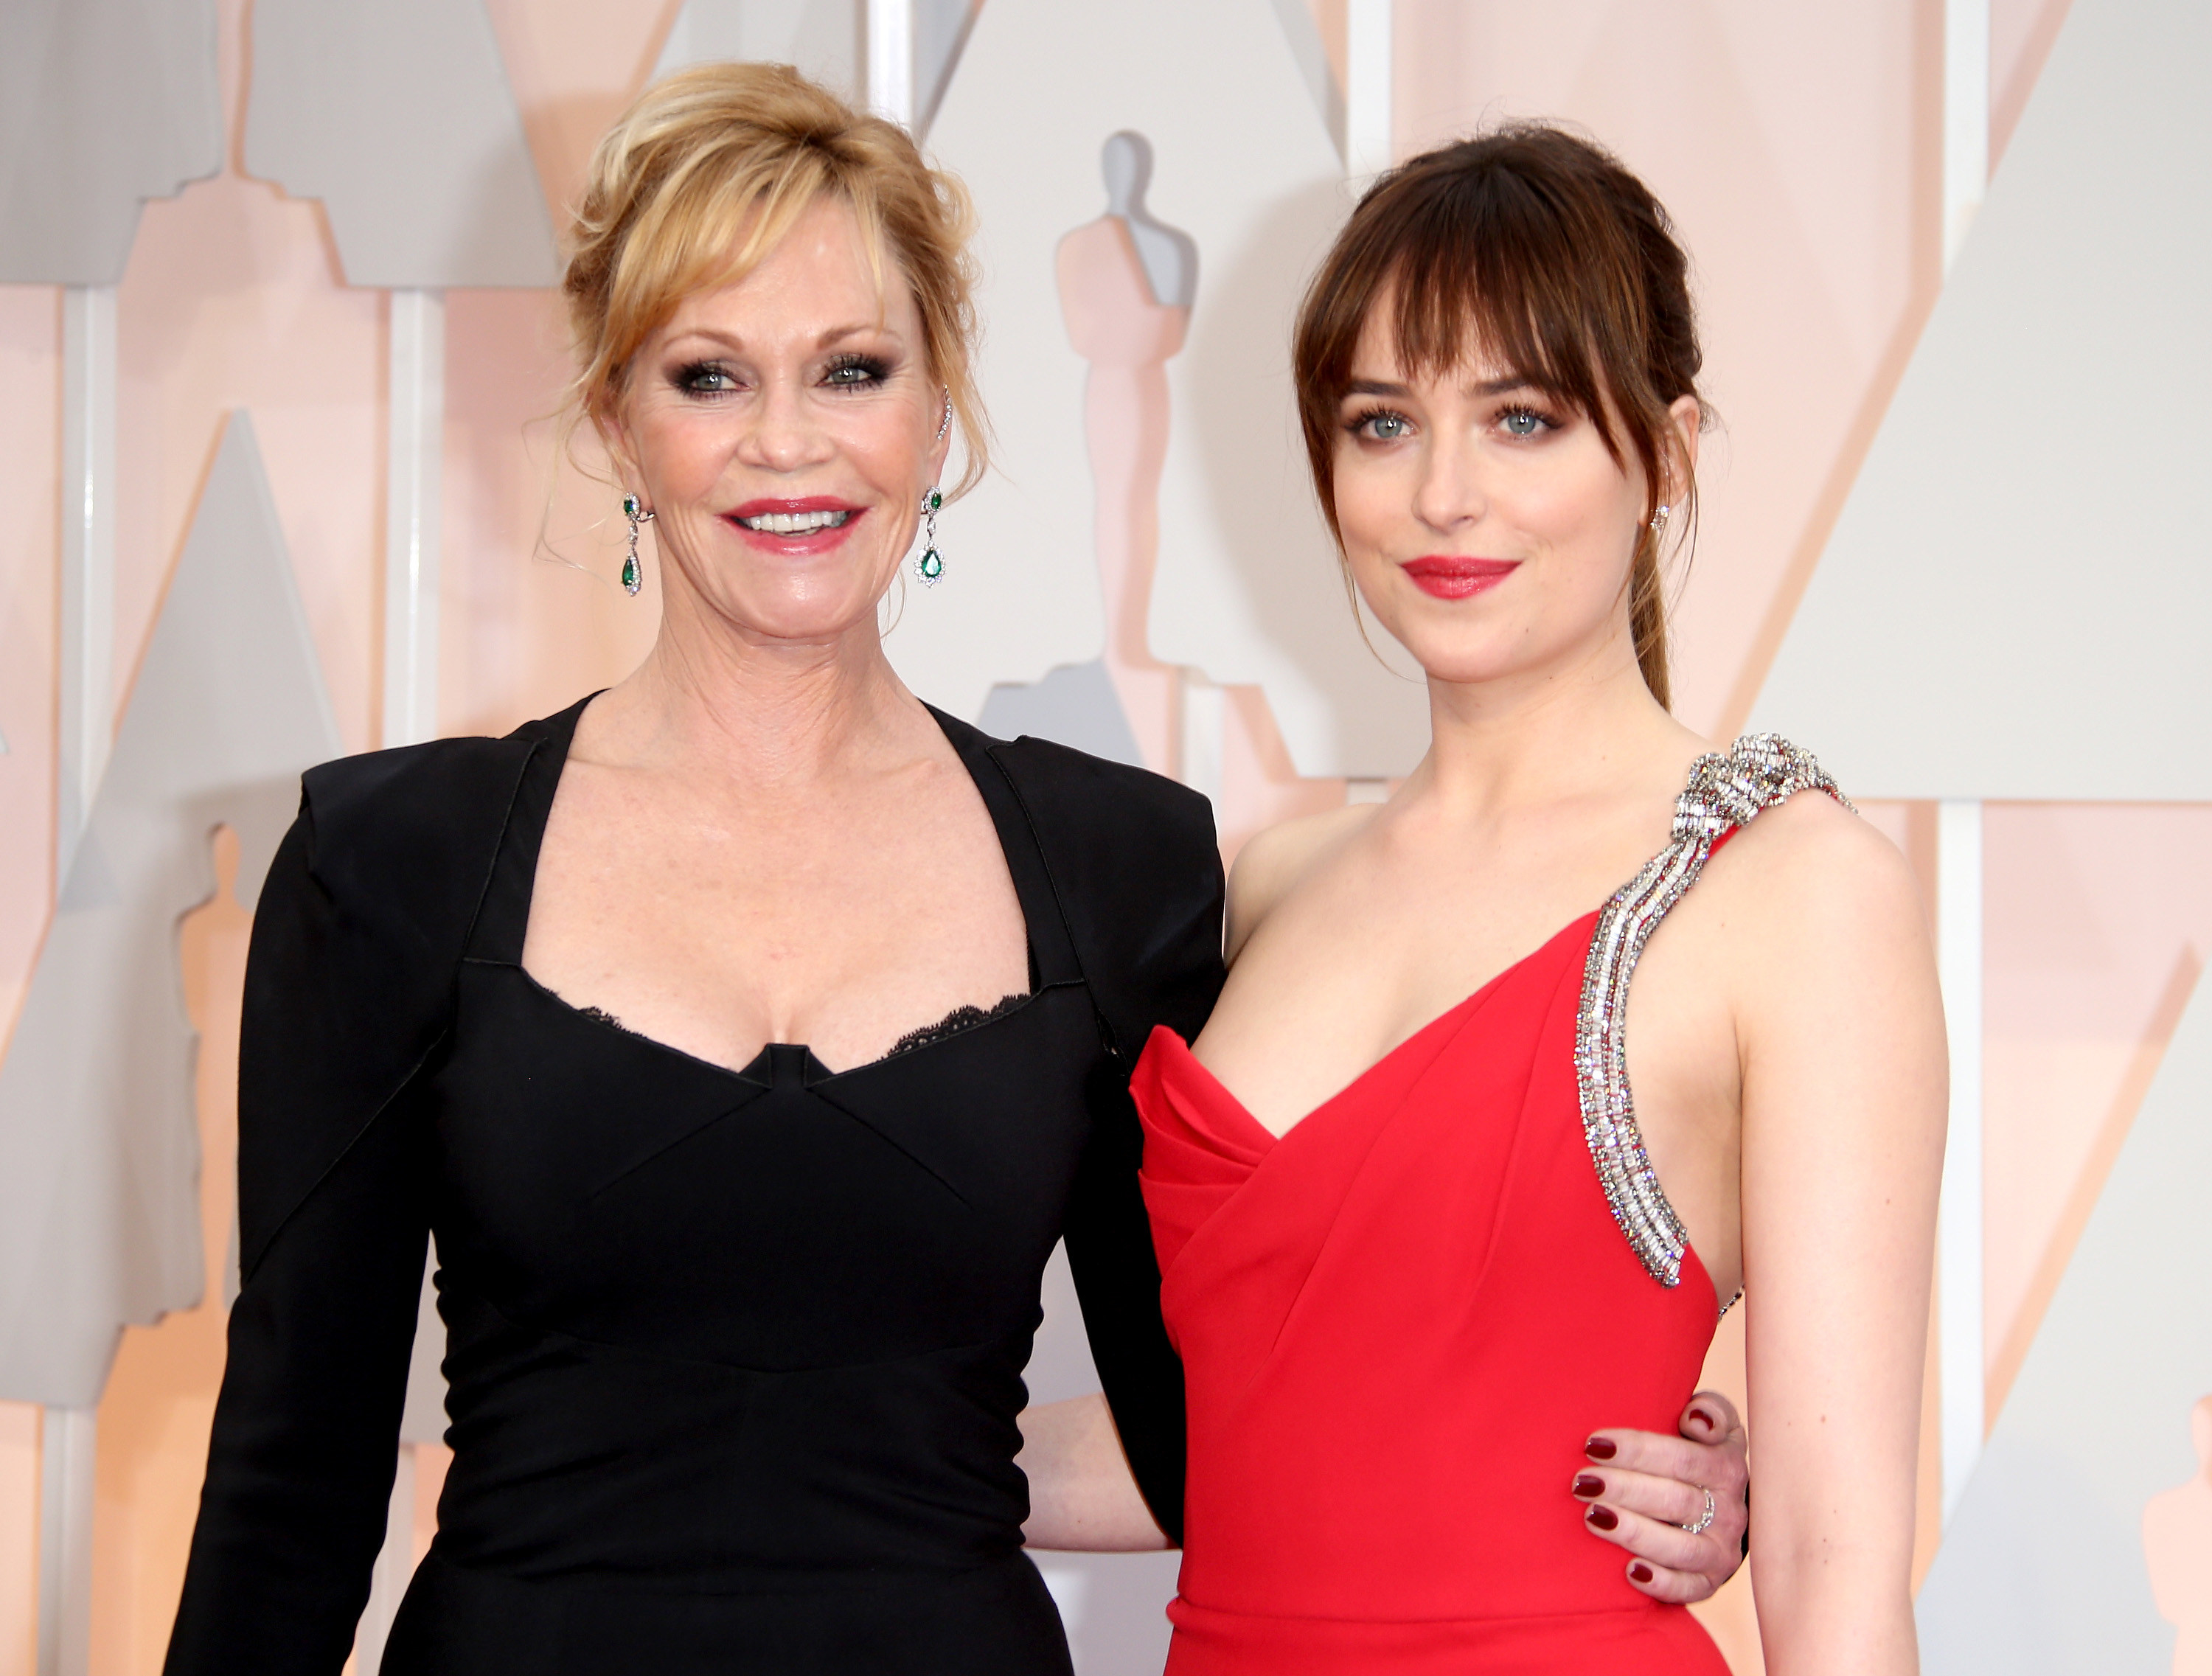 Melanie Griffith and Dakota Johnson in gowns on the red carpet